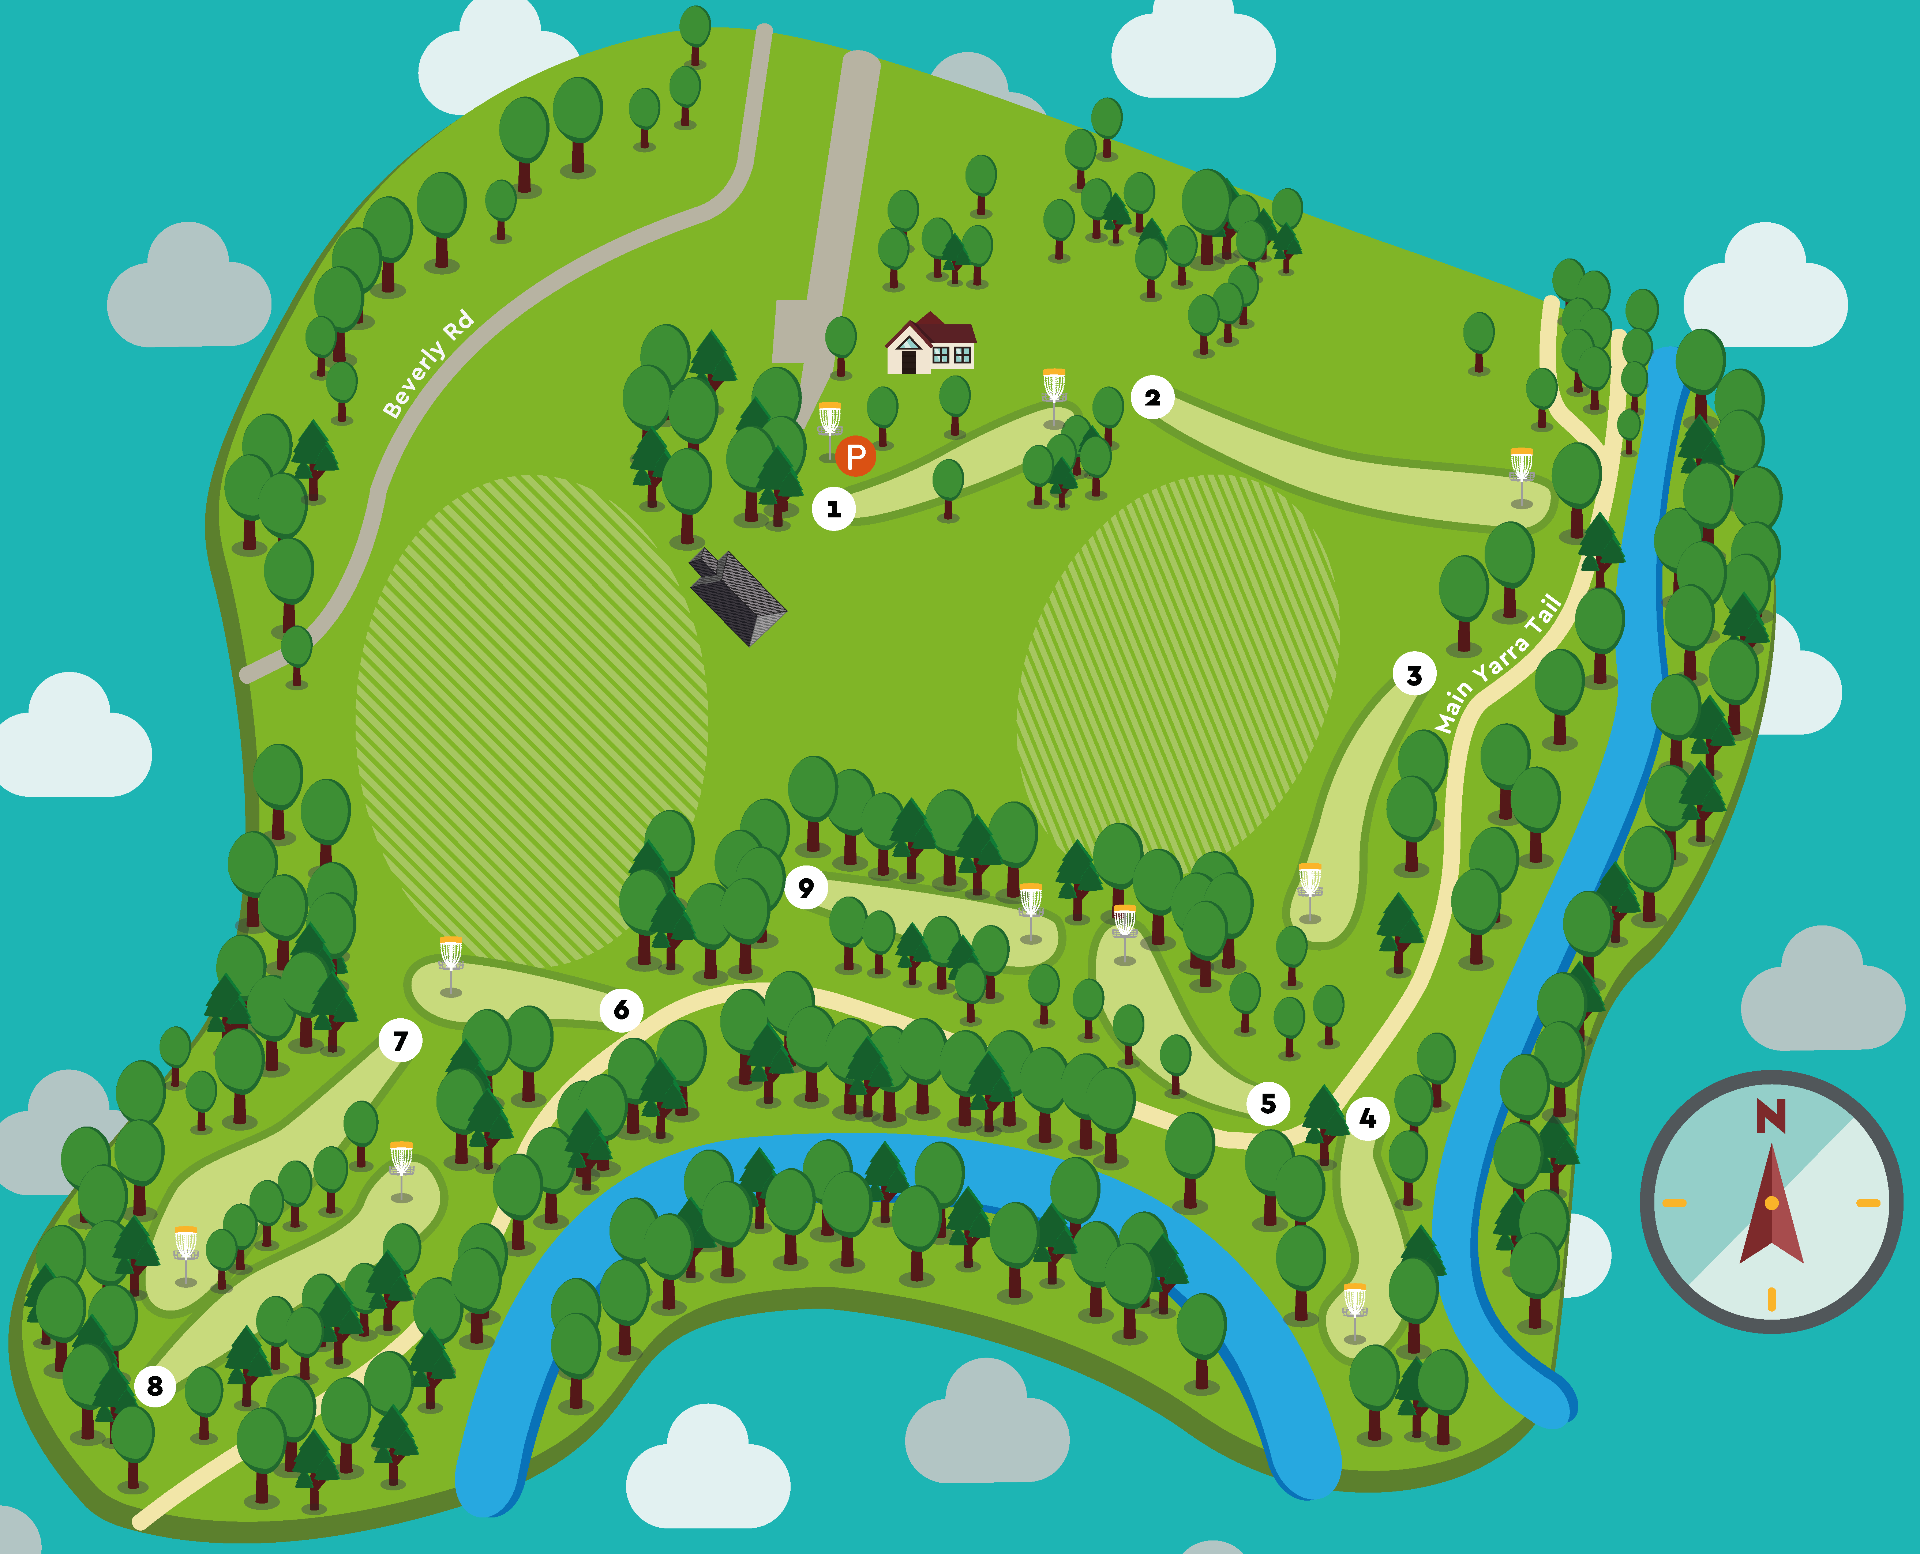 Disc golf course map for Warringal Parklands